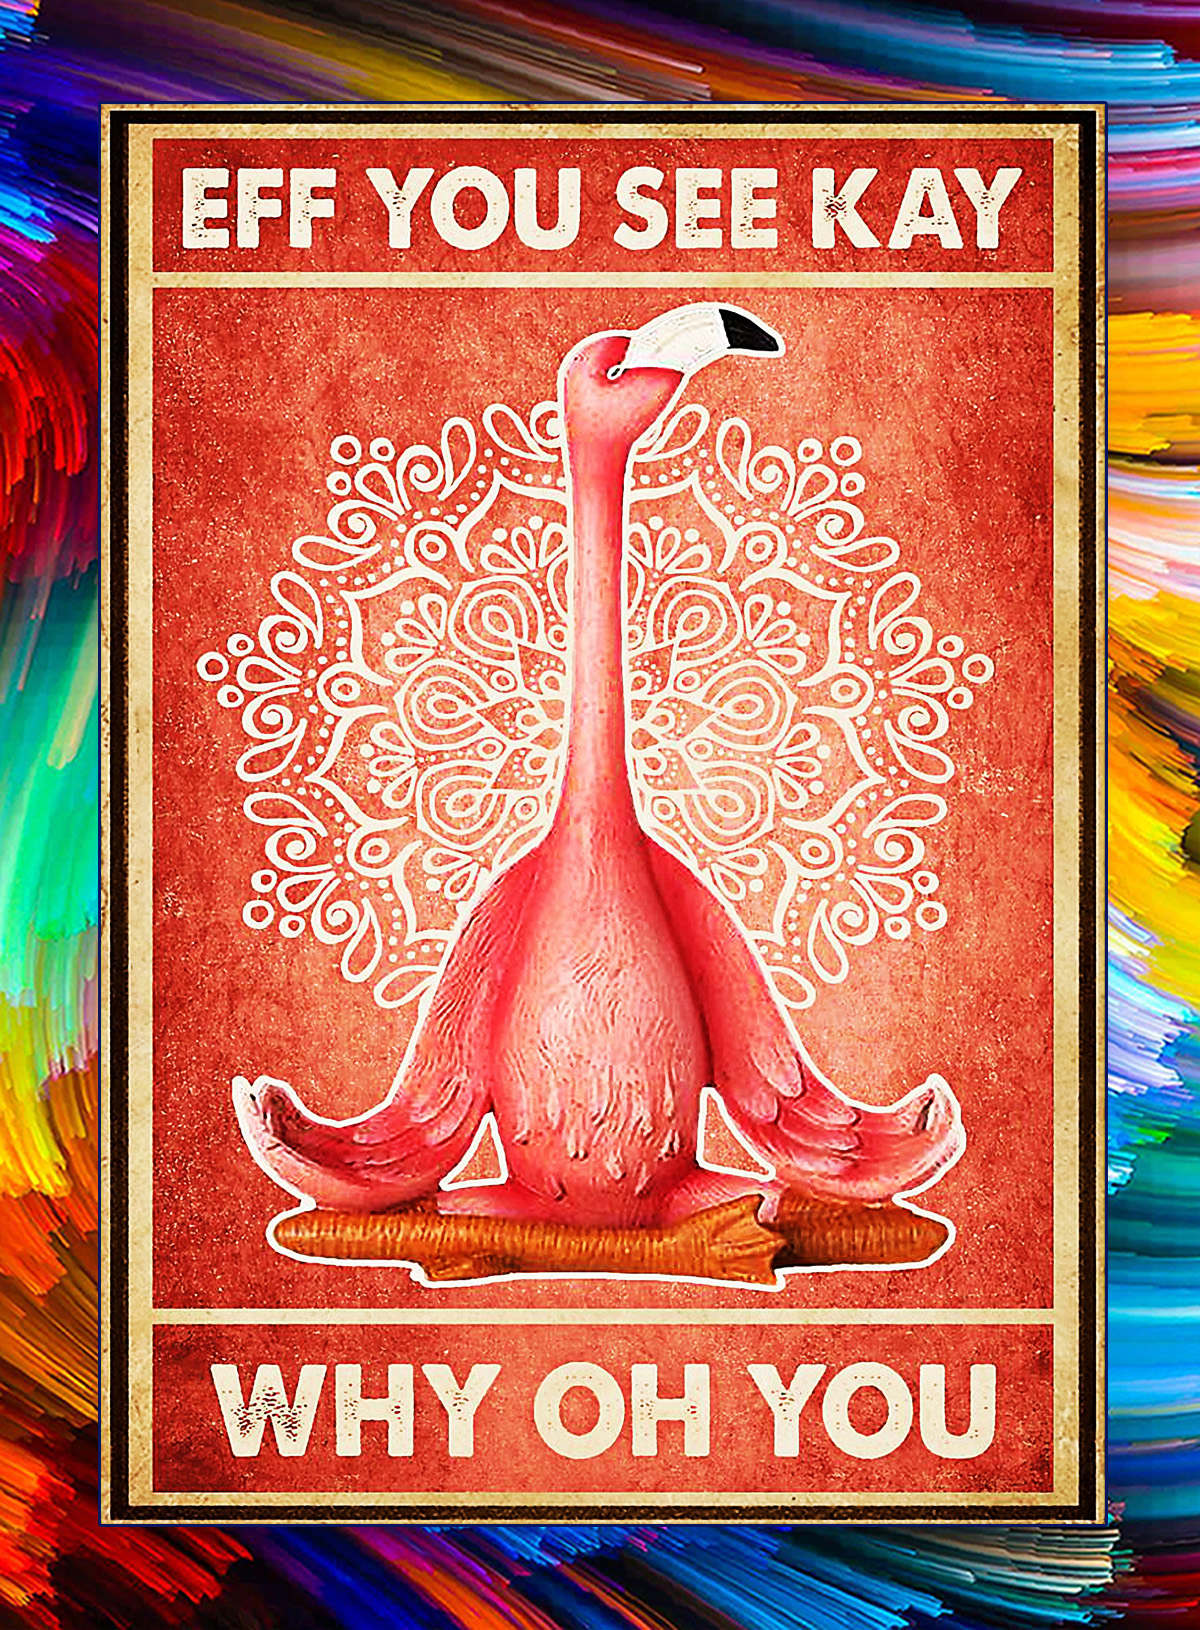 Flamingo retro sun eff you see kay why oh you poster - A4